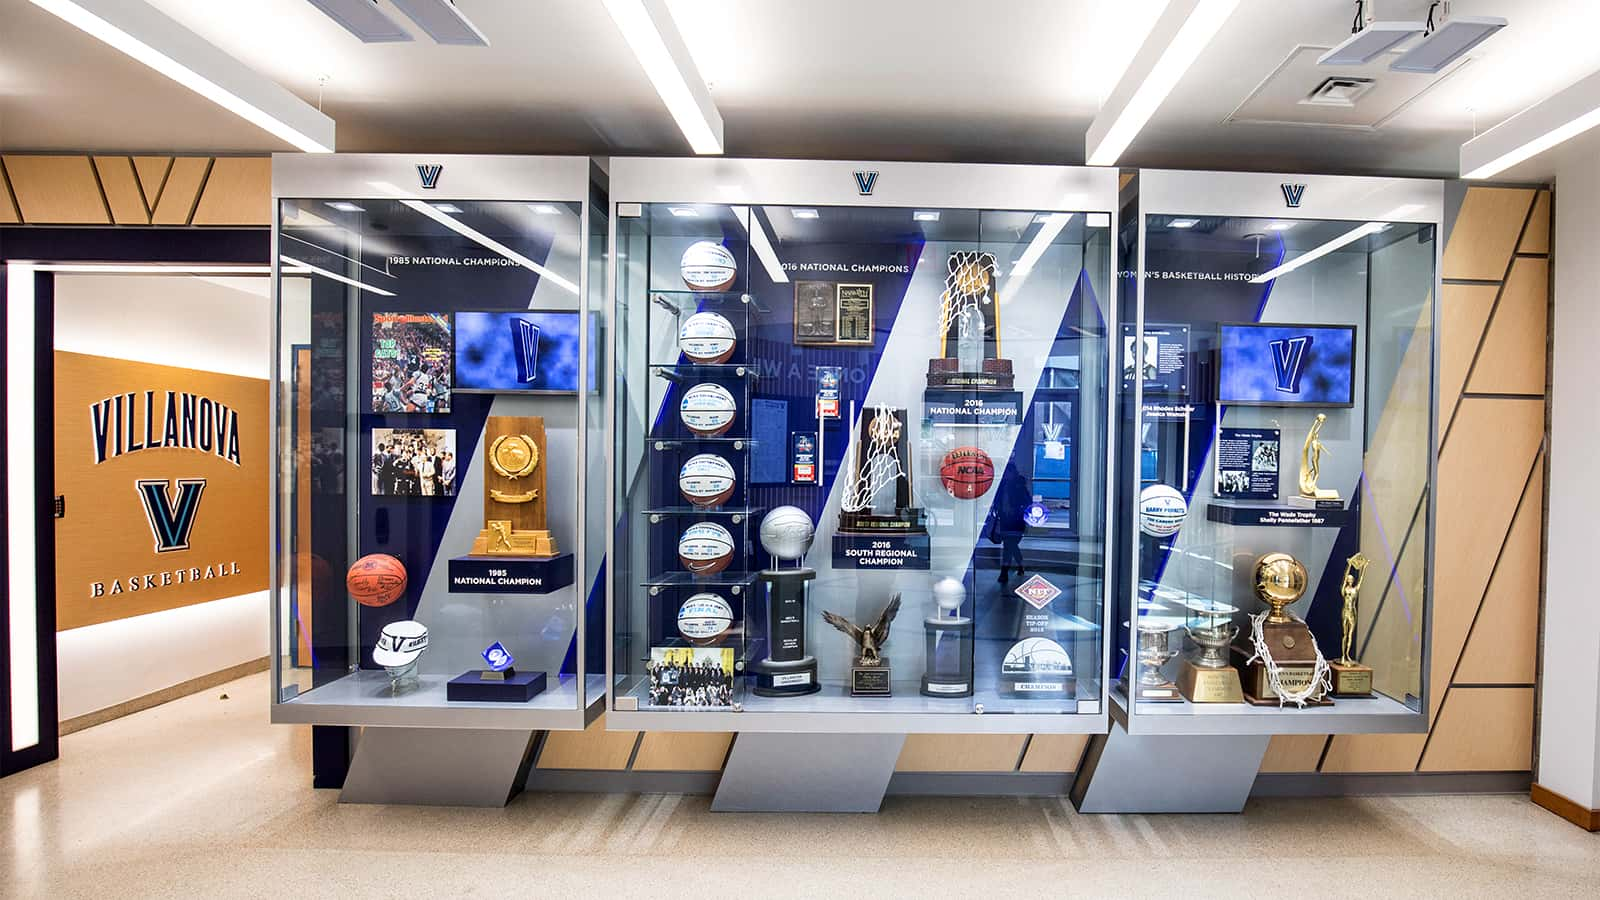 Wildcat Basketball trophy case in the rear of the atrium of the Villanova Davis Center.